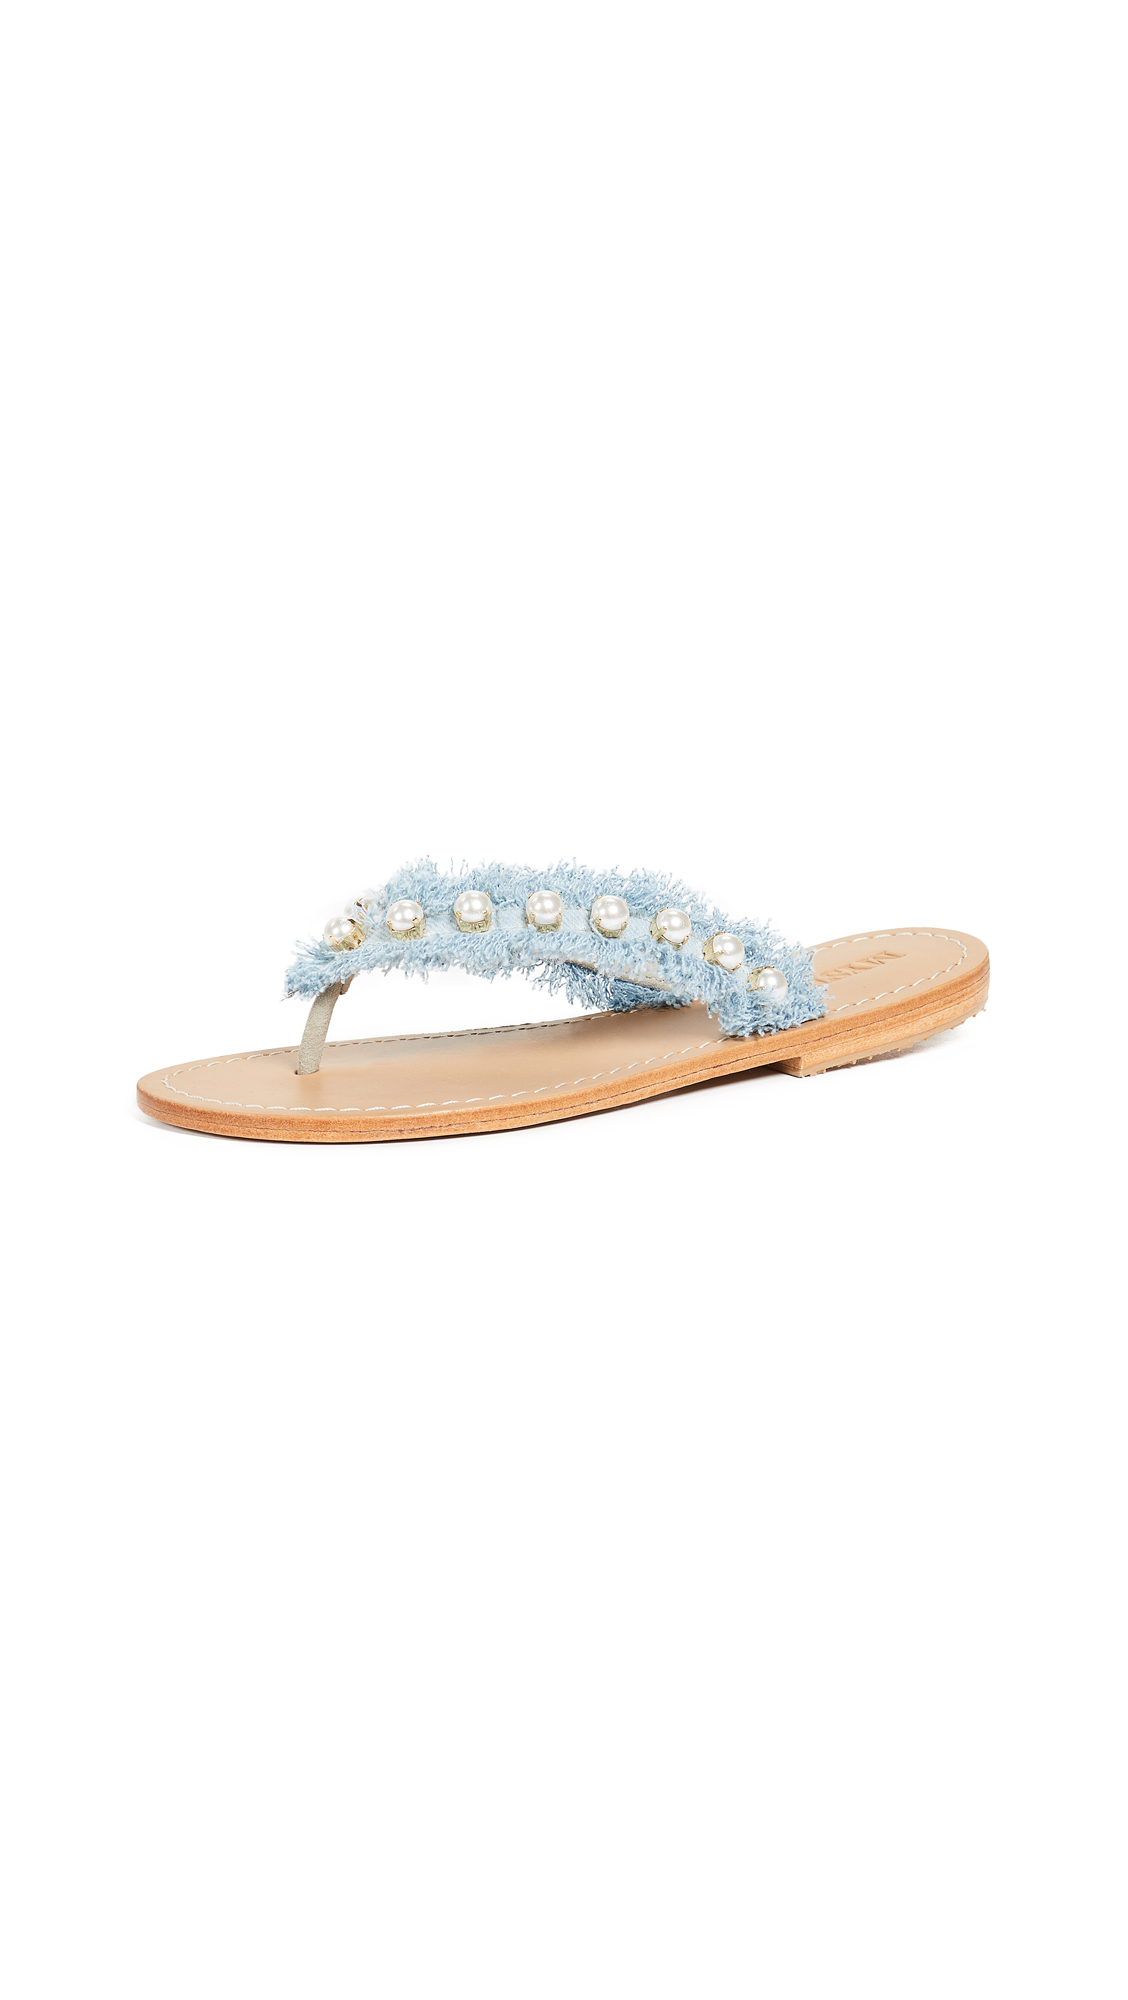 Mystique Imitation Pearl Flip Flops - Denim